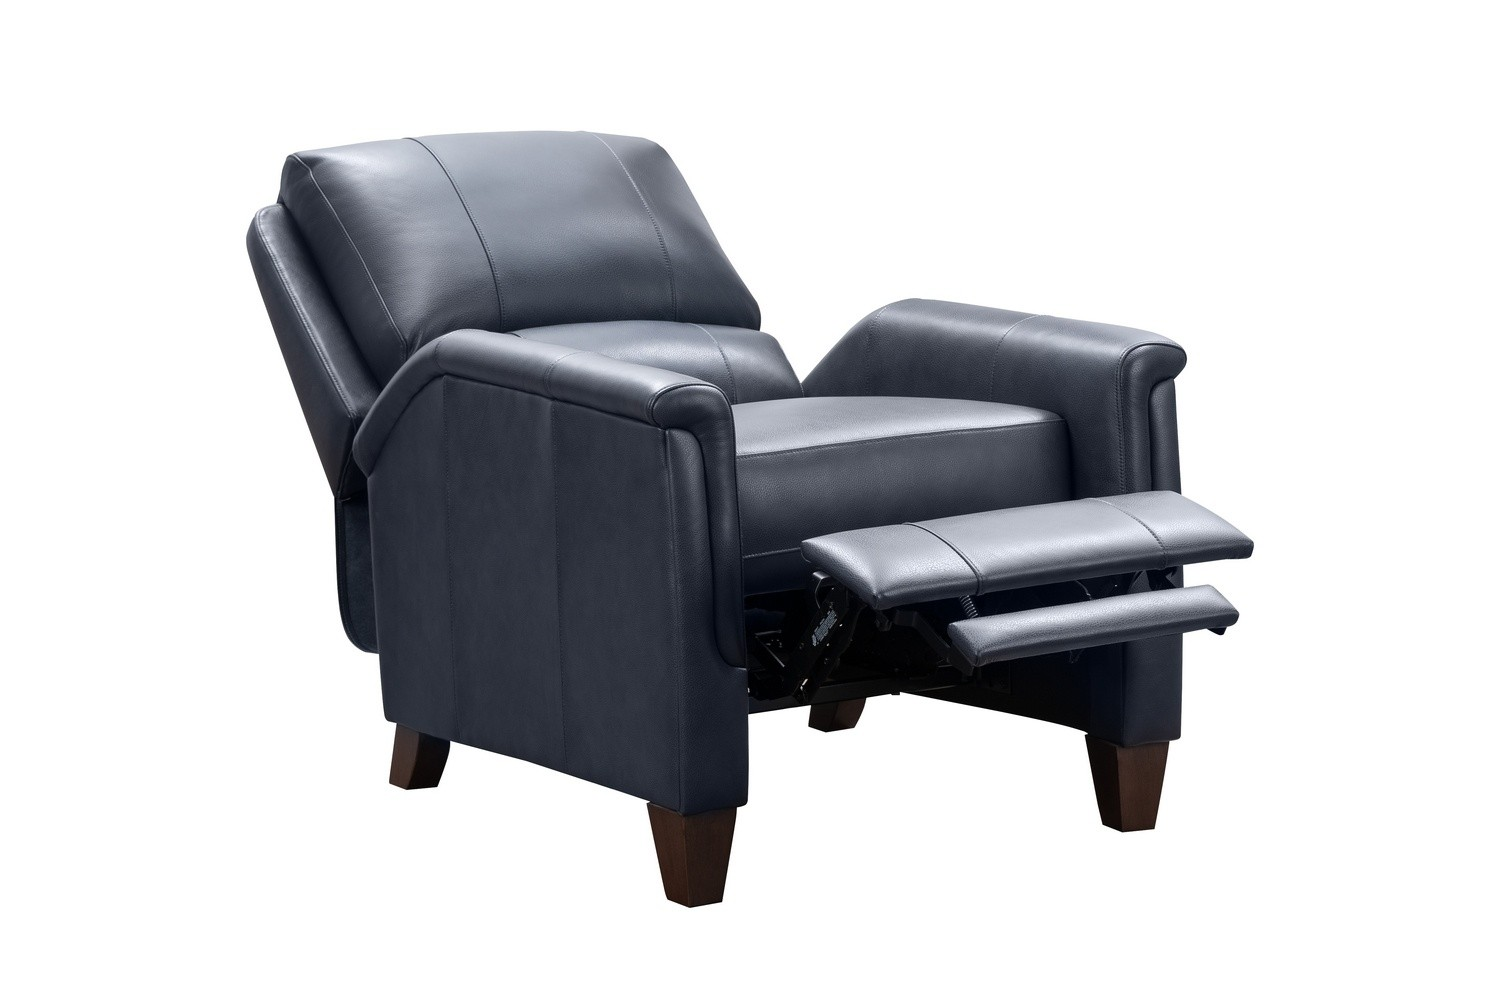 Barcalounger Quinn Recliner Chair - Barone Navy Blue/All Leather